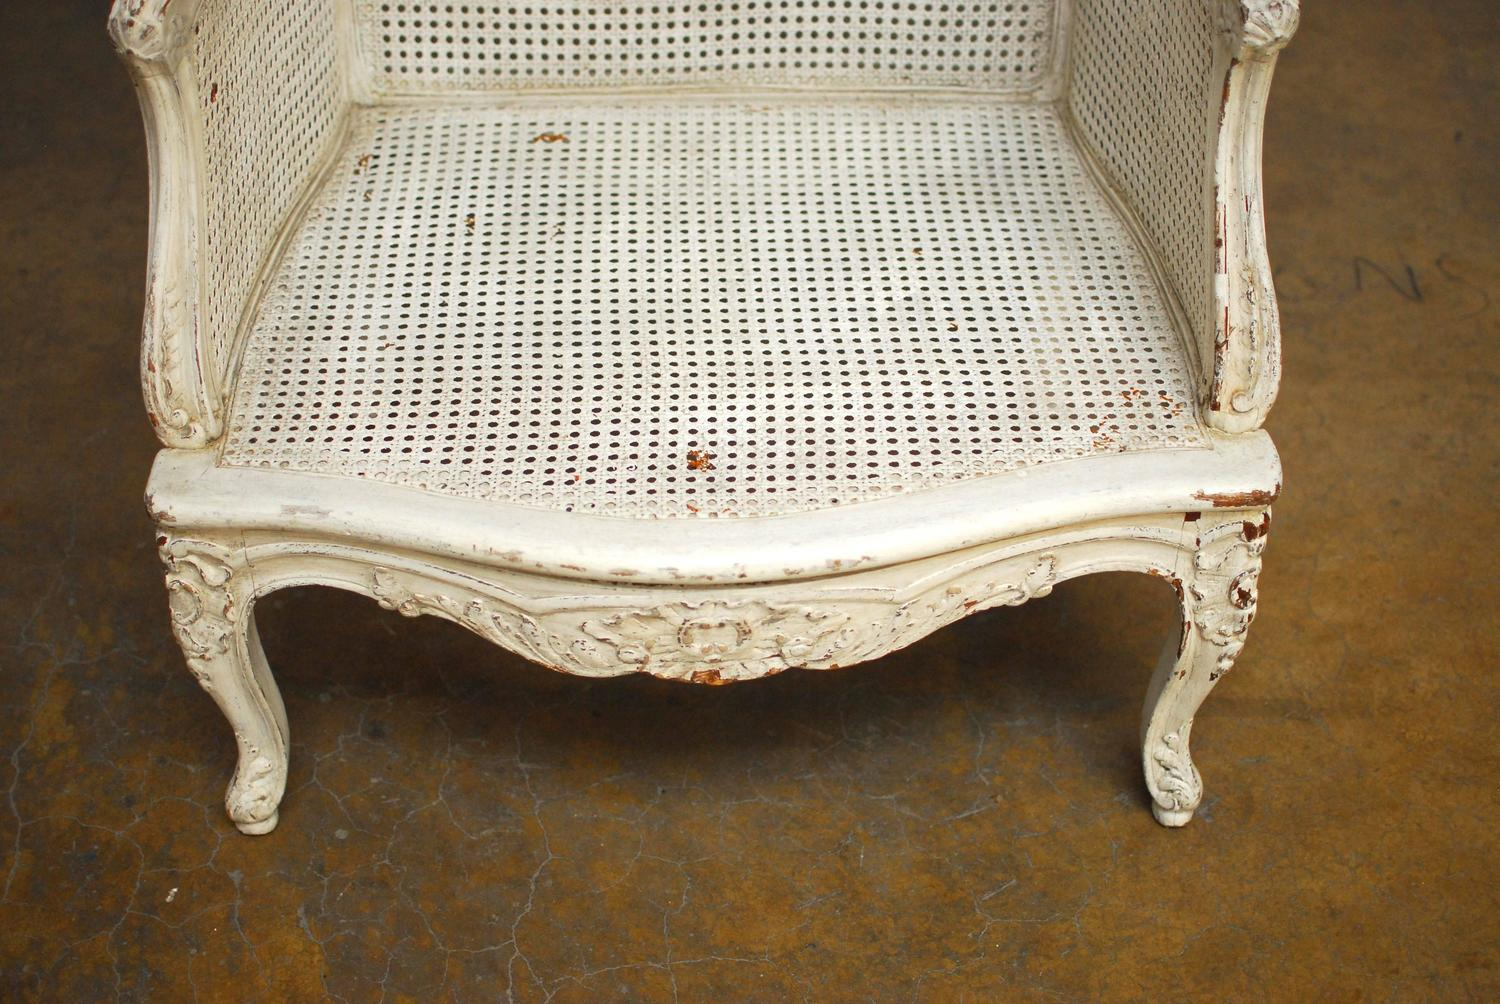 bergere chairs for sale shabby chic kitchen chair cushions louis xv cane wingback at 1stdibs